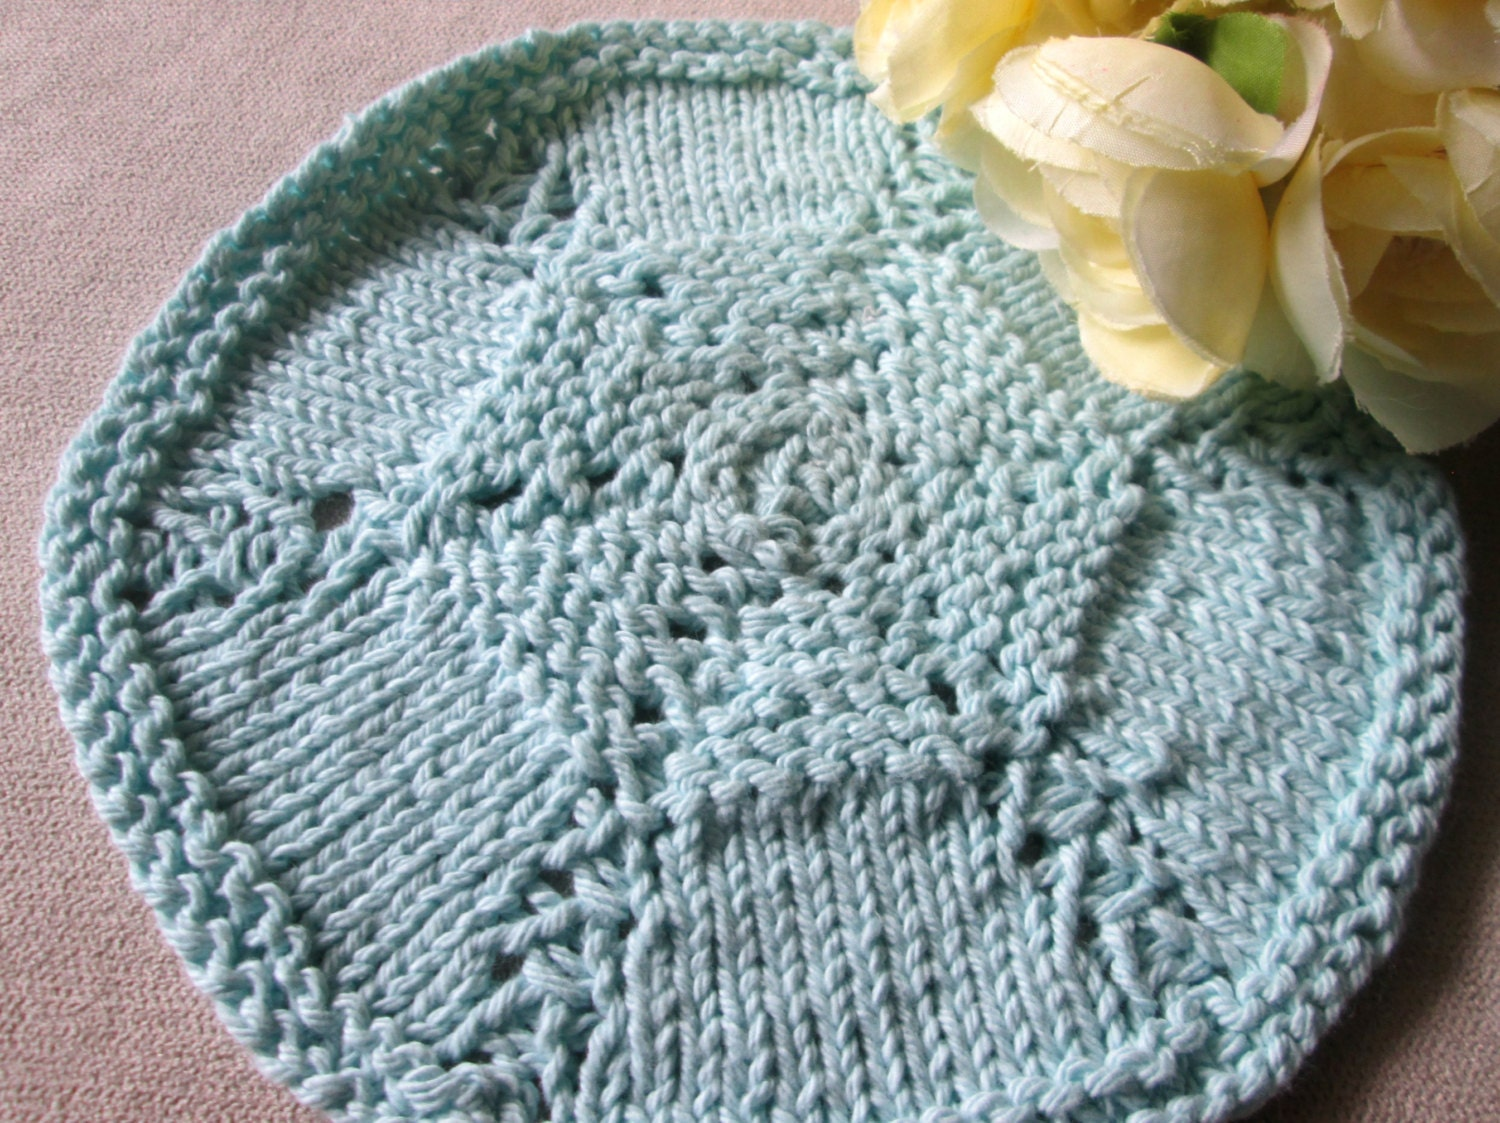 Round Dishcloth Knitting Pattern, Circular Dishcloth Knitting ...